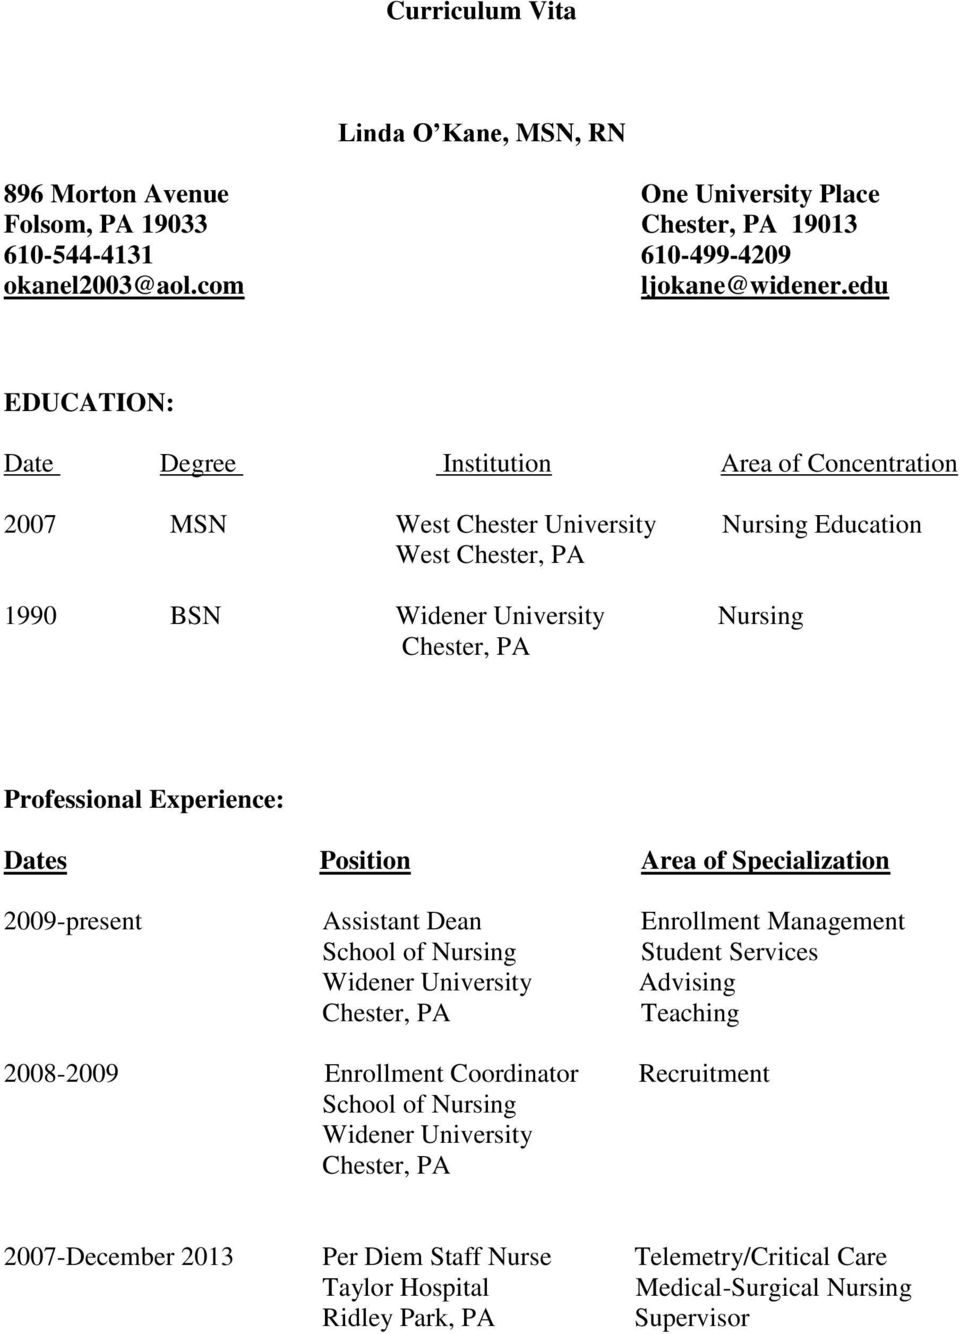 Experience: Dates Position Area of Specialization 2009-present Assistant Dean Enrollment Management School of Nursing Student Services Widener University Advising Chester, PA Teaching